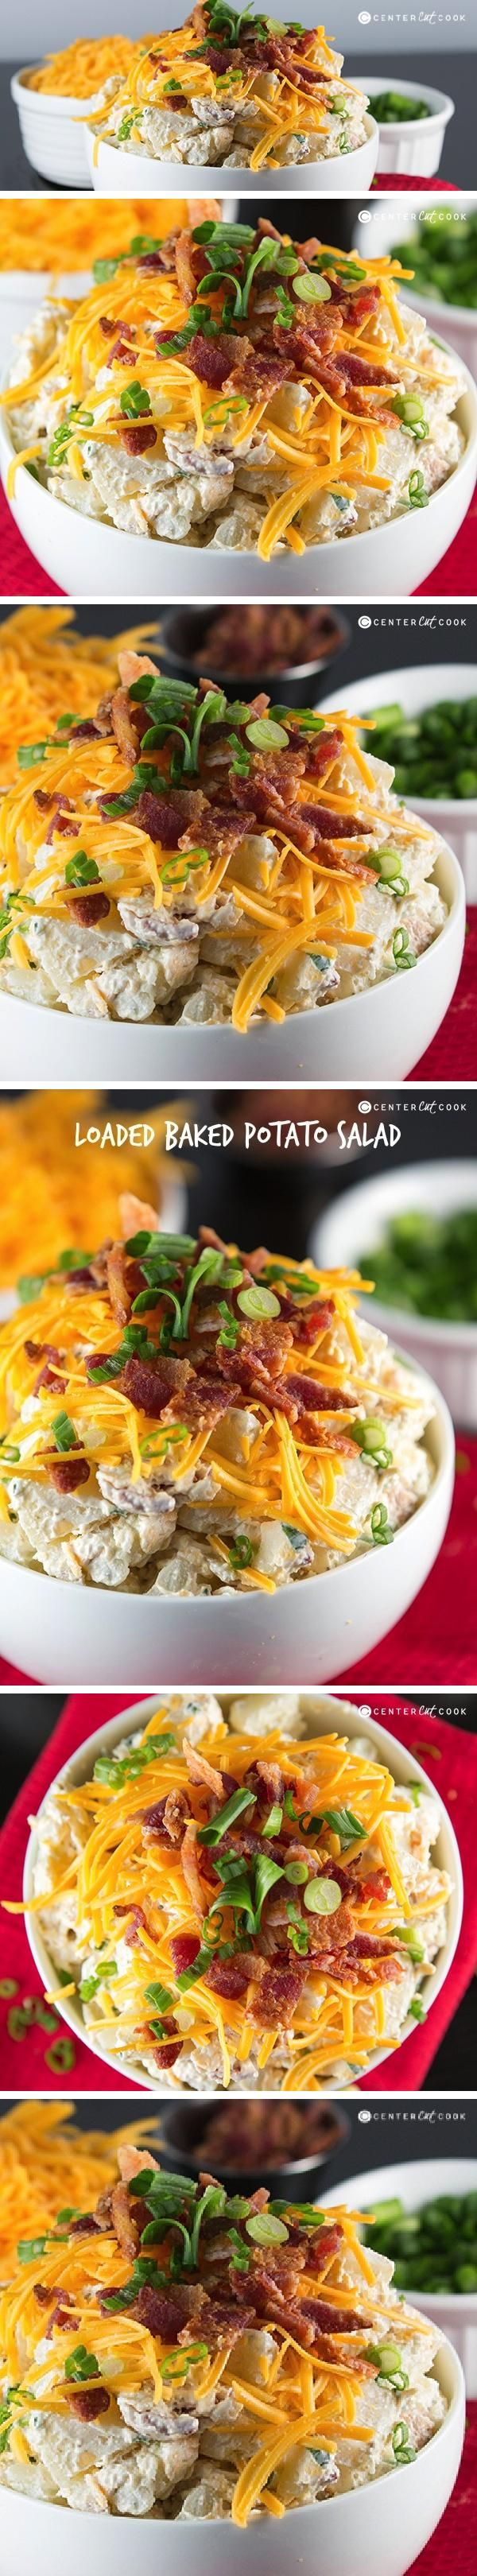 This Loaded Baked Potato Salad has everything you love about baked potatoes! It's made with sour cream, real bacon crumbles, cheddar cheese and chives. It's best served cold and is the perfect side for summer pot lucks and picnics! This Loaded Baked Potato Salad will soon be a summer staple in your house.